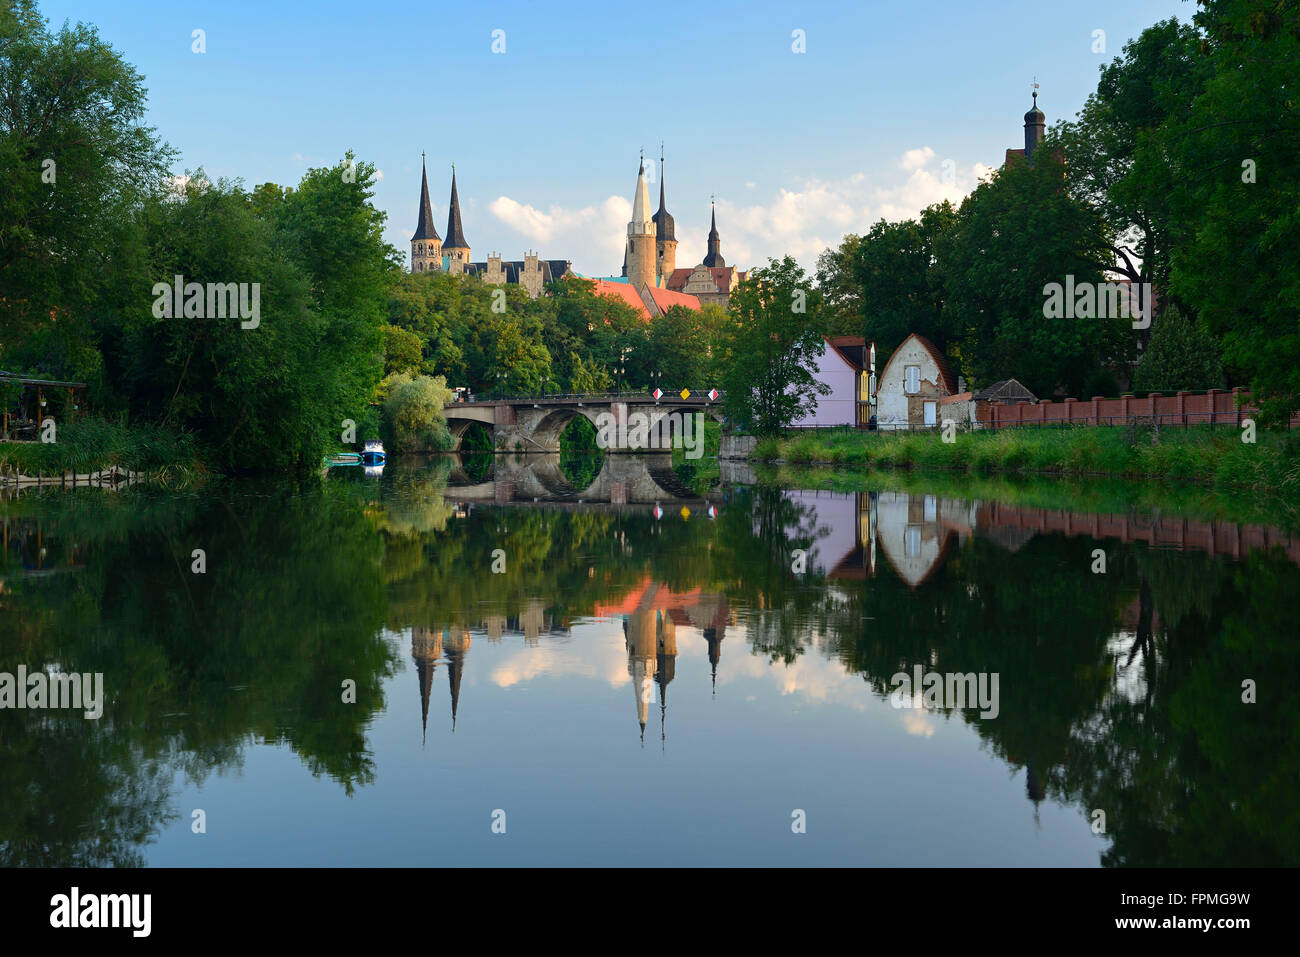 Germany, Saxony-Anhalt, Merseburg, cathedral and castle above the Saale - Stock Image